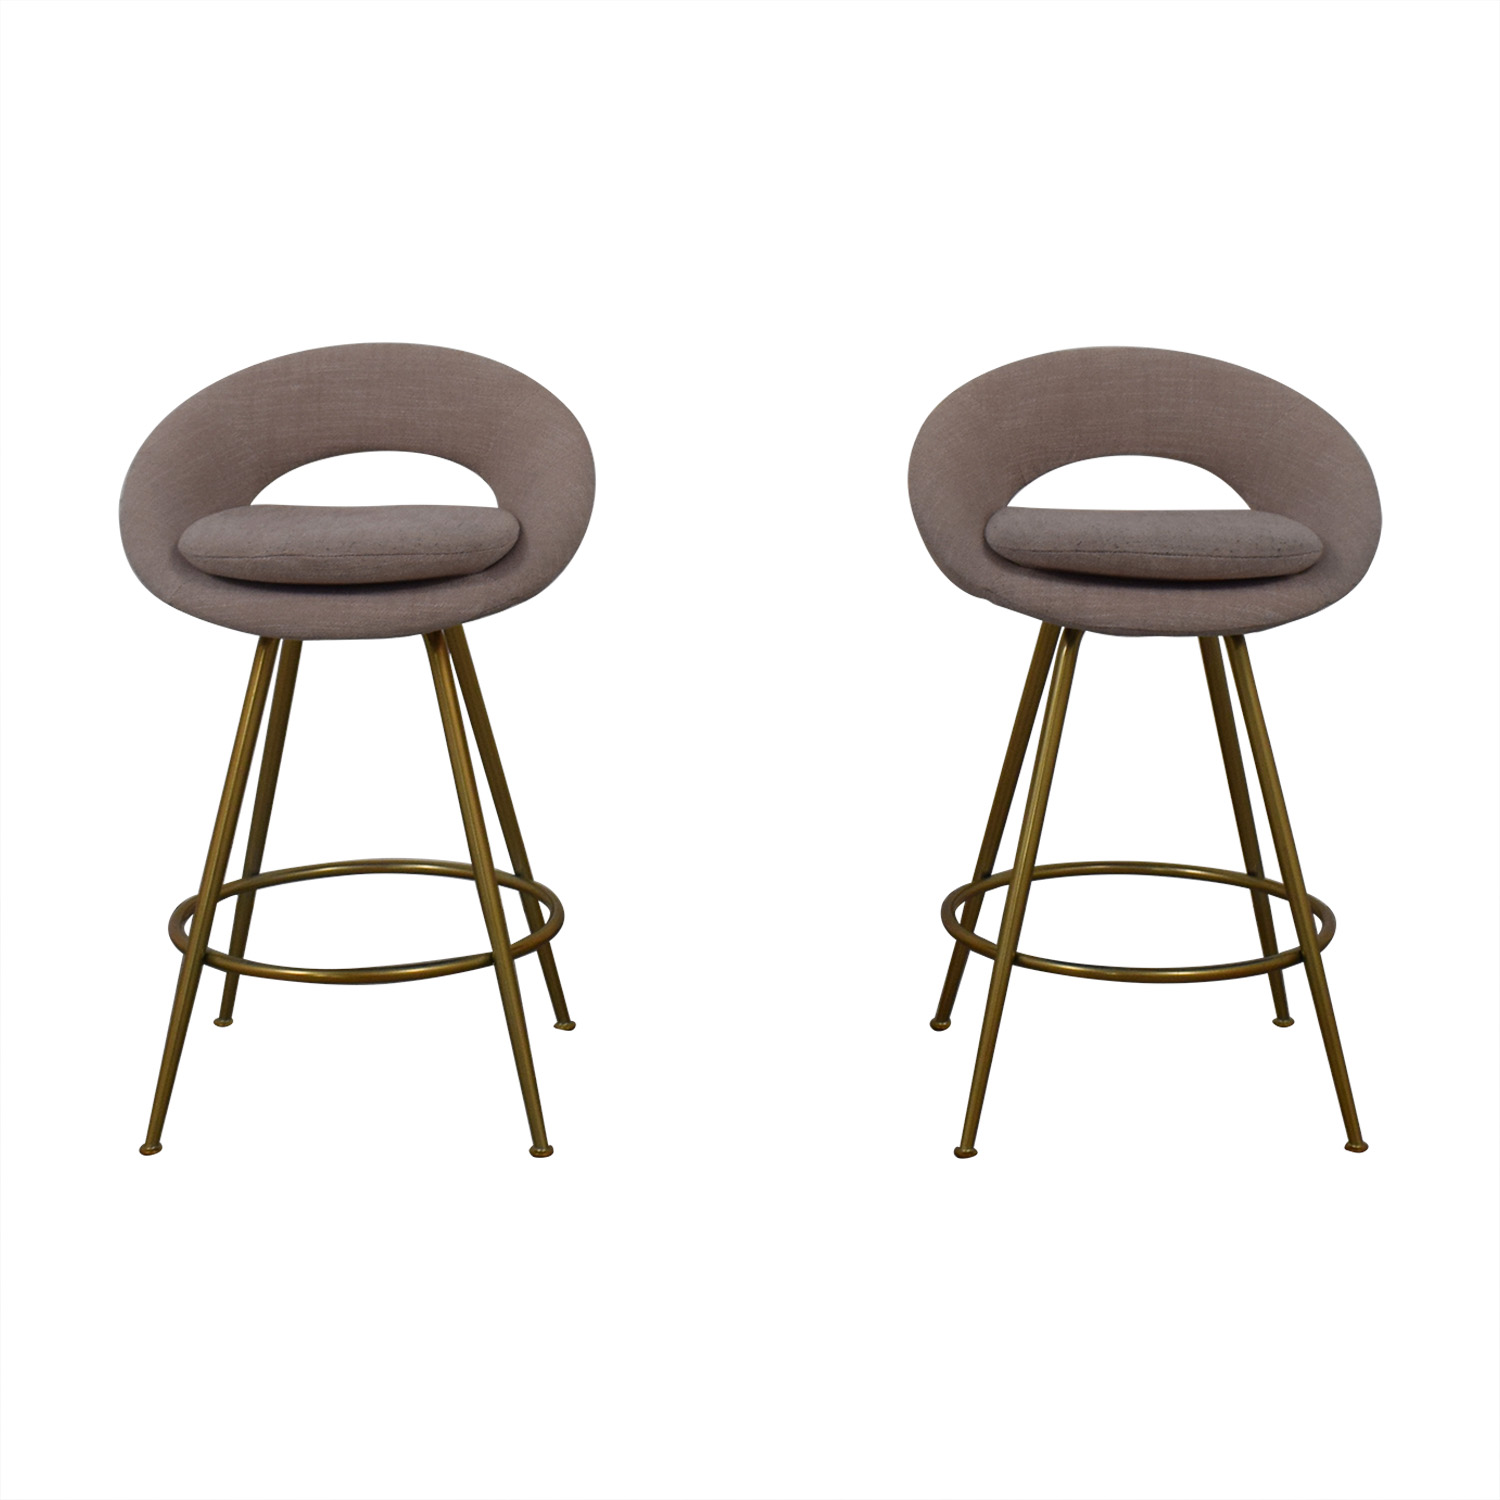 Outstanding 76 Off West Elm West Elm Orb Upholstered Bar Stools Chairs Gmtry Best Dining Table And Chair Ideas Images Gmtryco